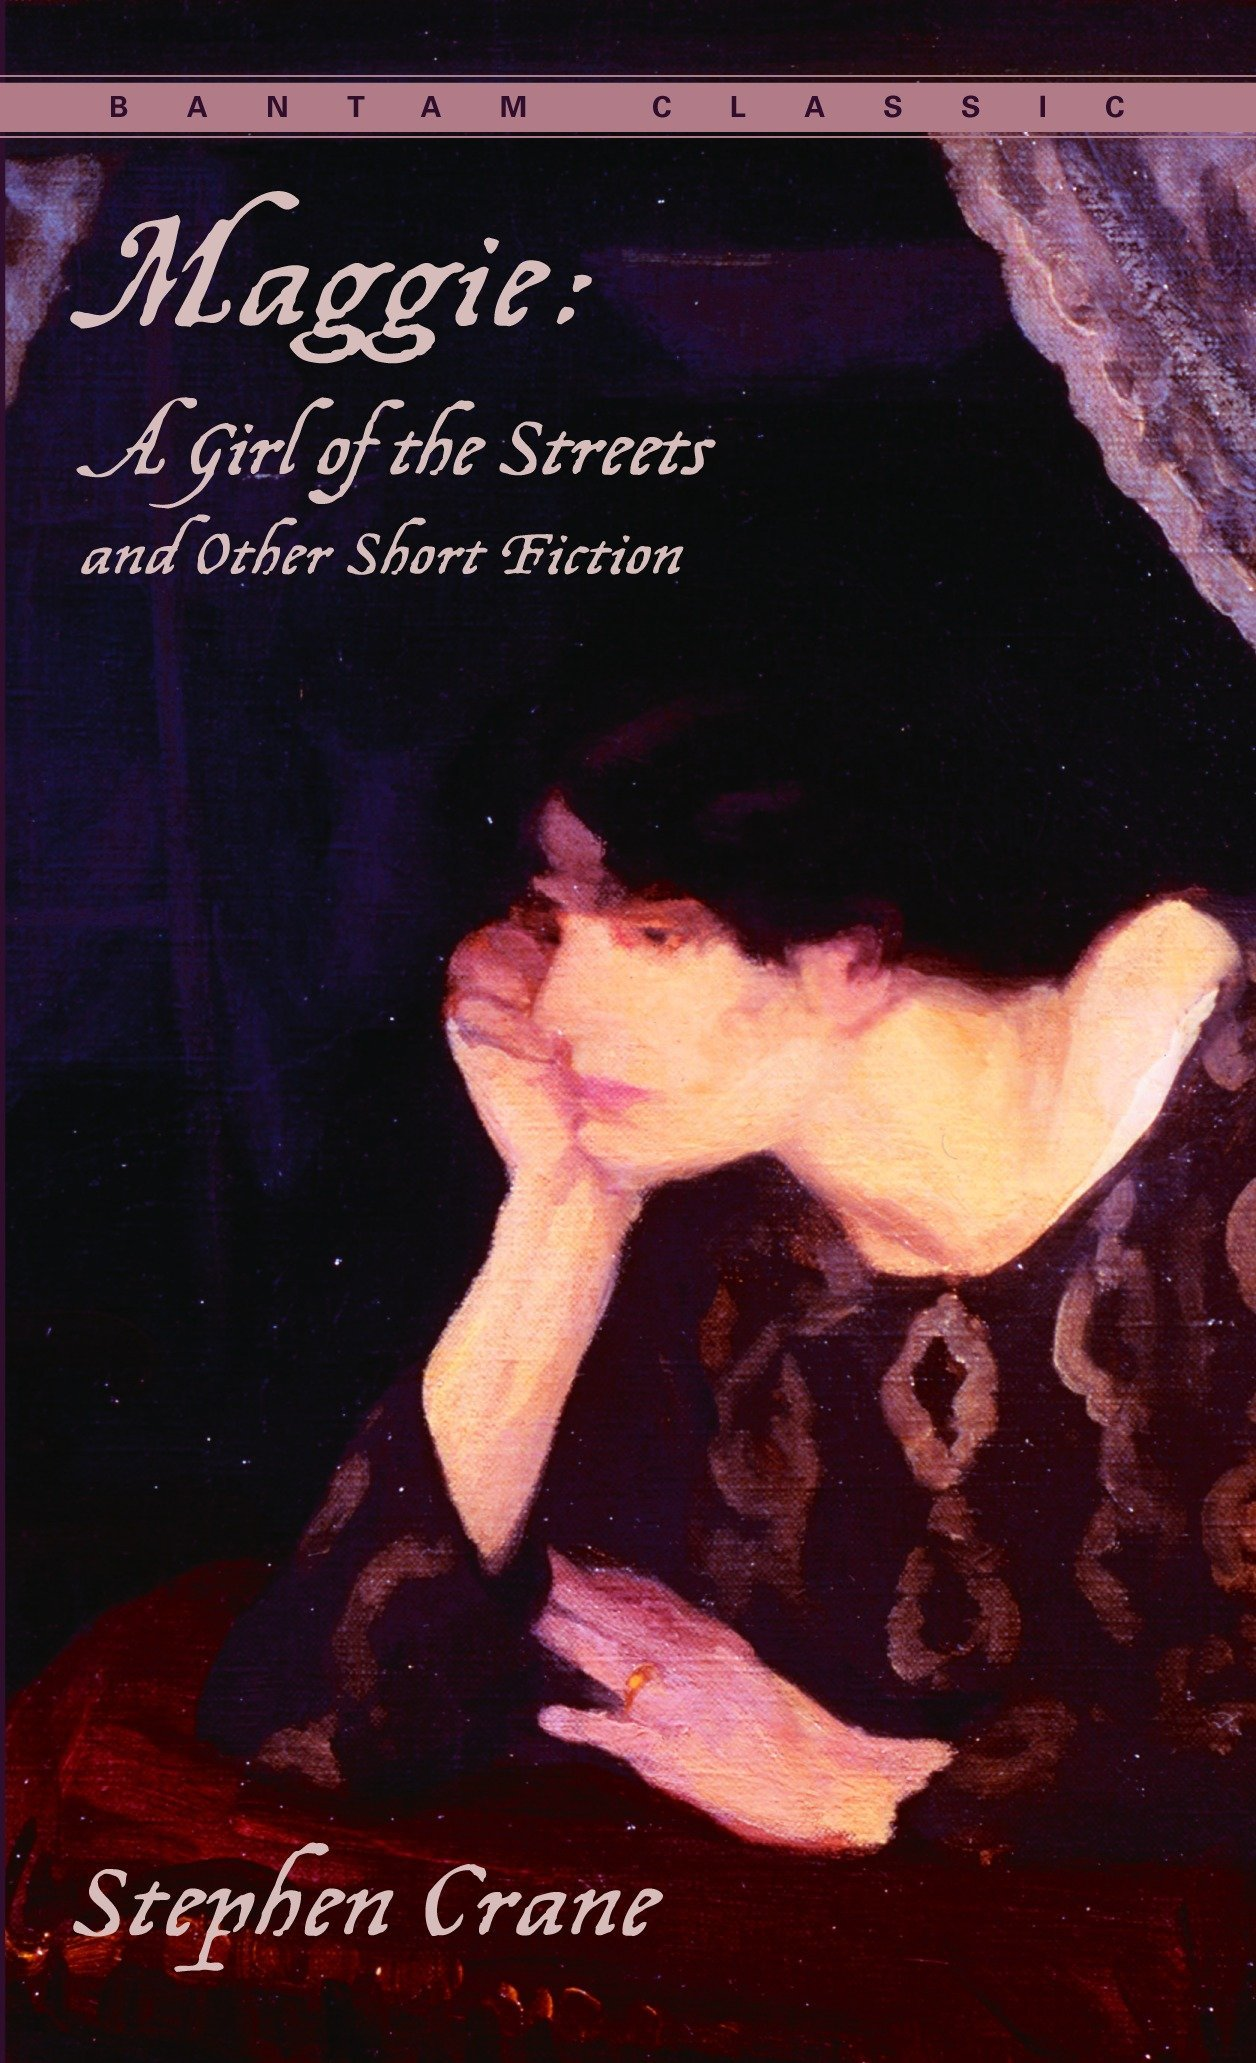 Maggie: A Girl of the Streets and Other Short Fiction